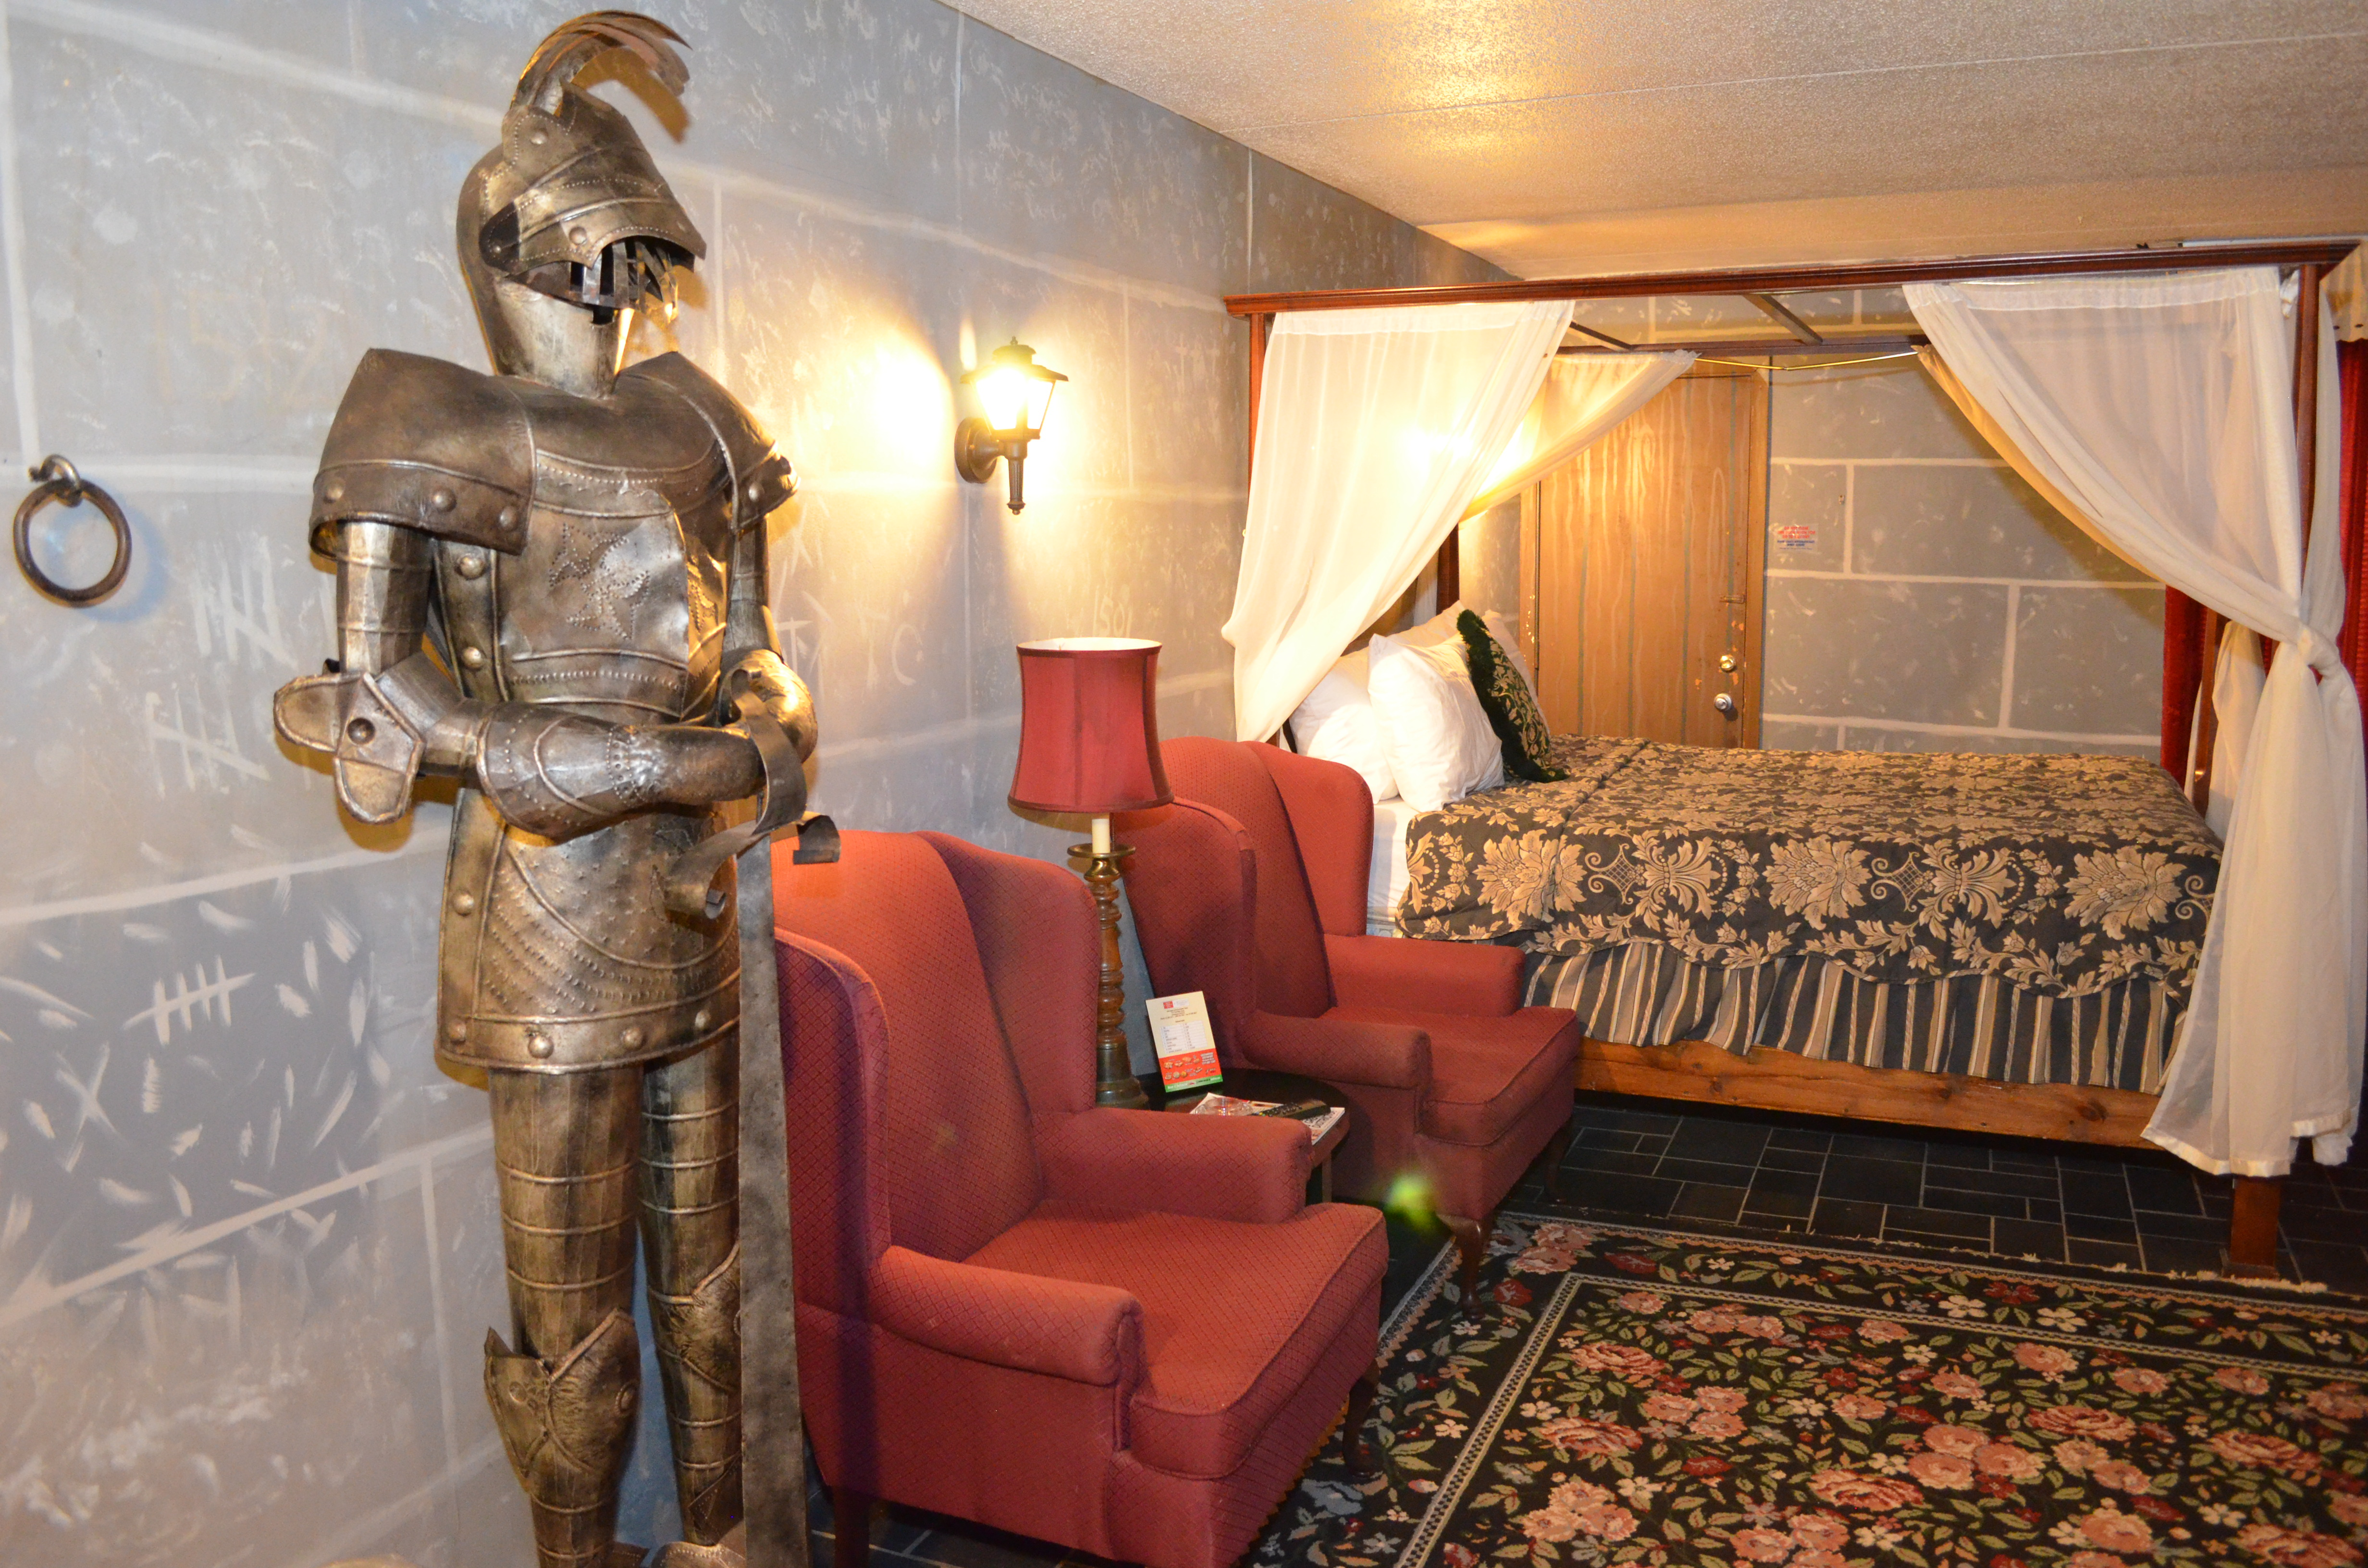 venetia themed mn rooms cbs credit restaurants to hotel renovations room wcco ivy unveils